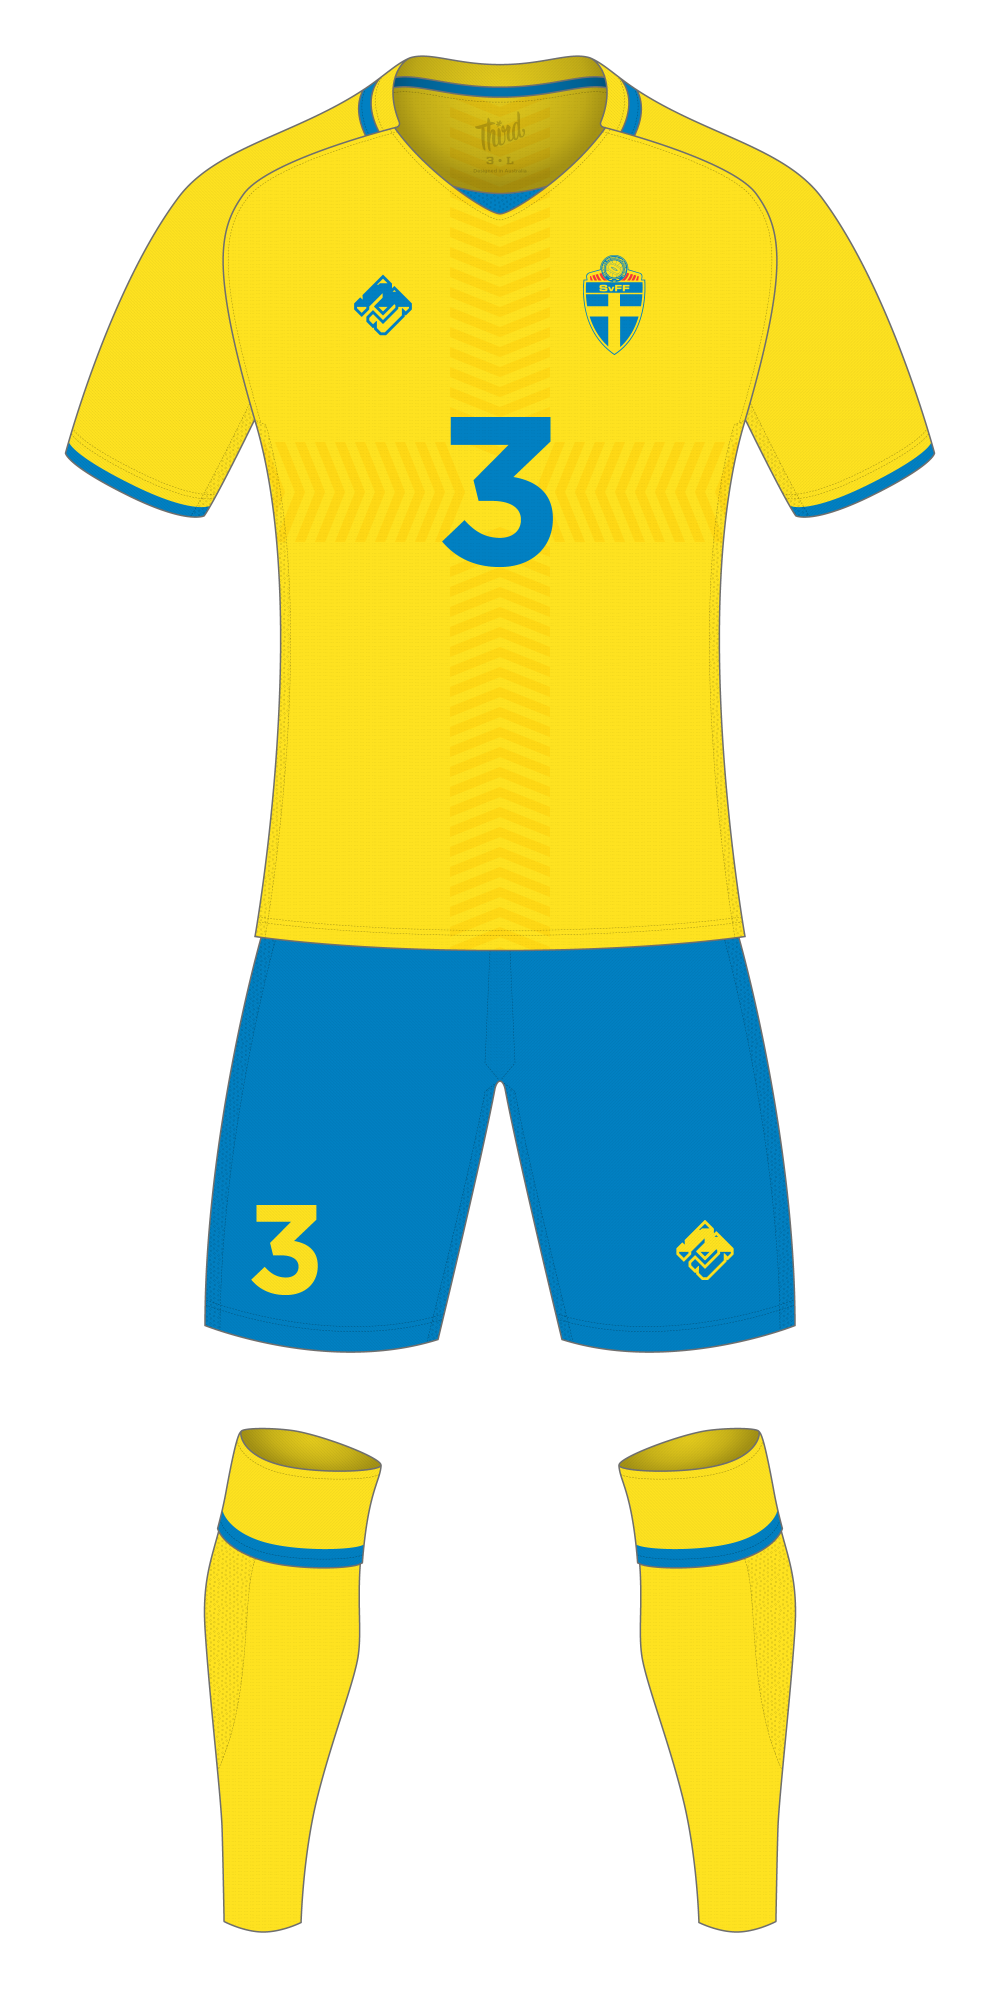 Sweden World Cup 2018 concept